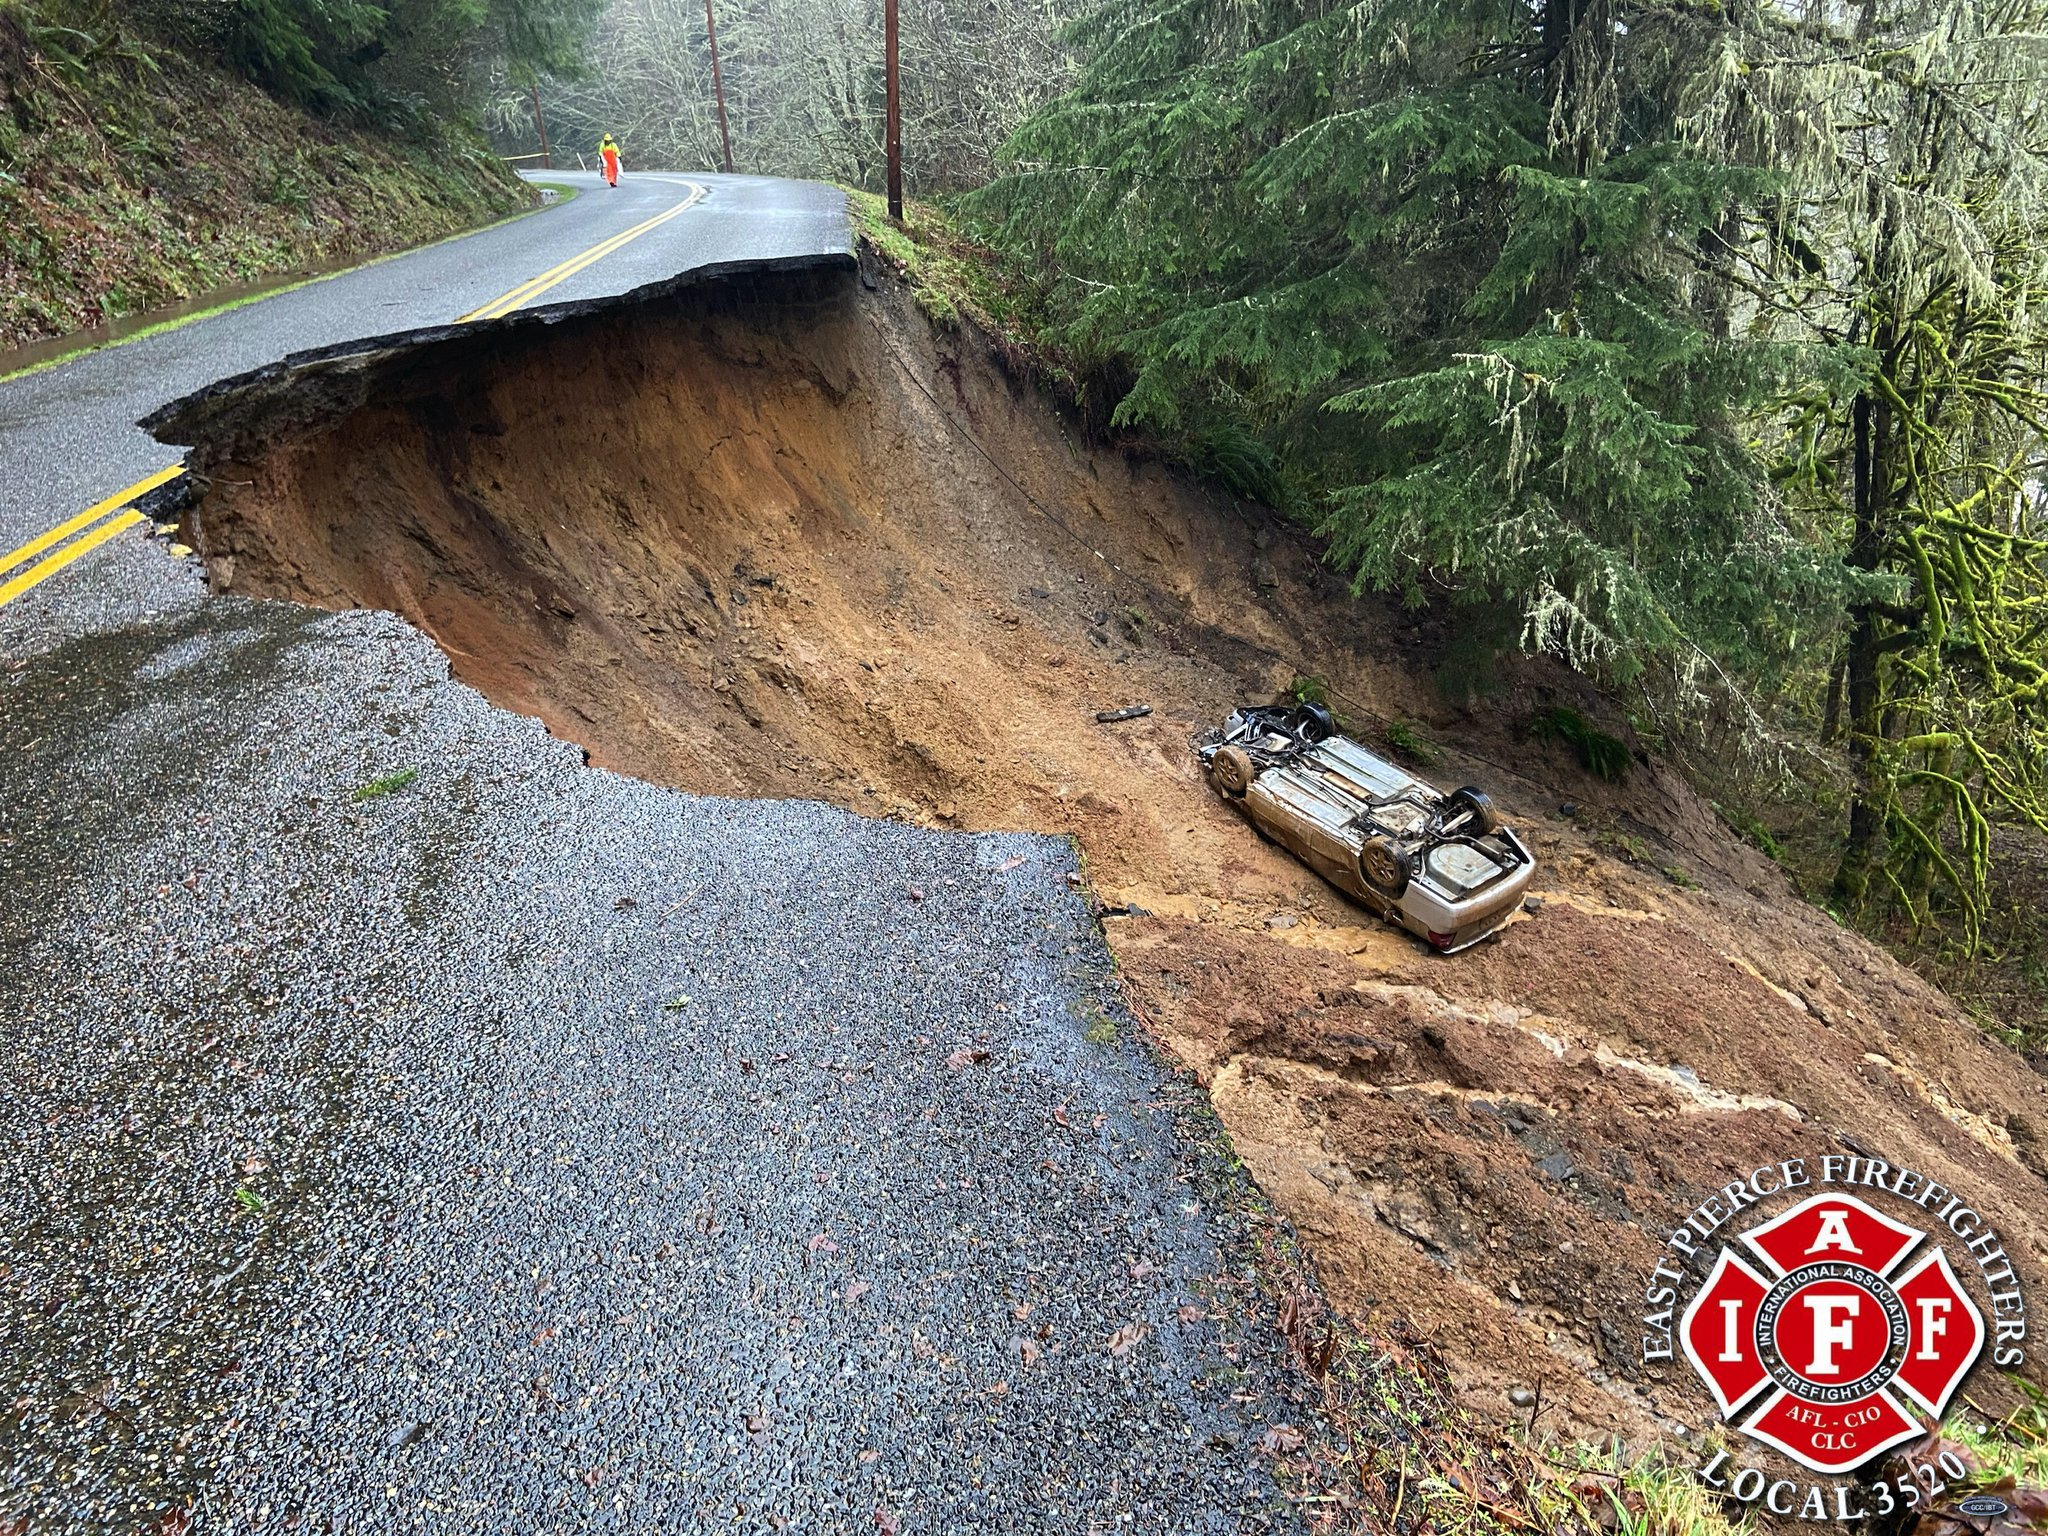 Photos from todays flood damage on SR162. Stay safe out there folks #IAFF #WaWx https://t.co/iU0OBwRsVF